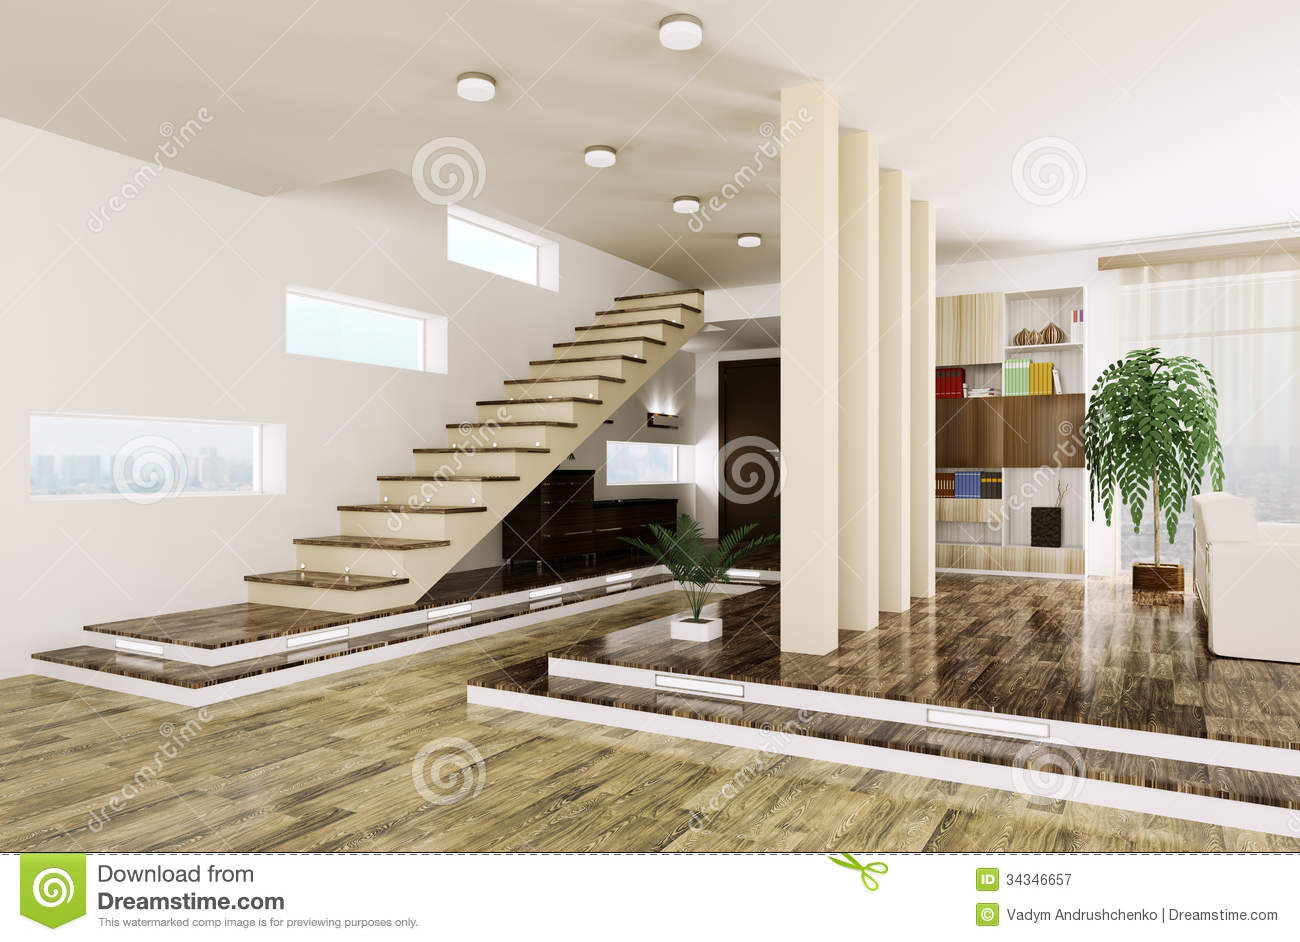 Entrance hall interior 3d render royalty free stock for House entrance designs interior